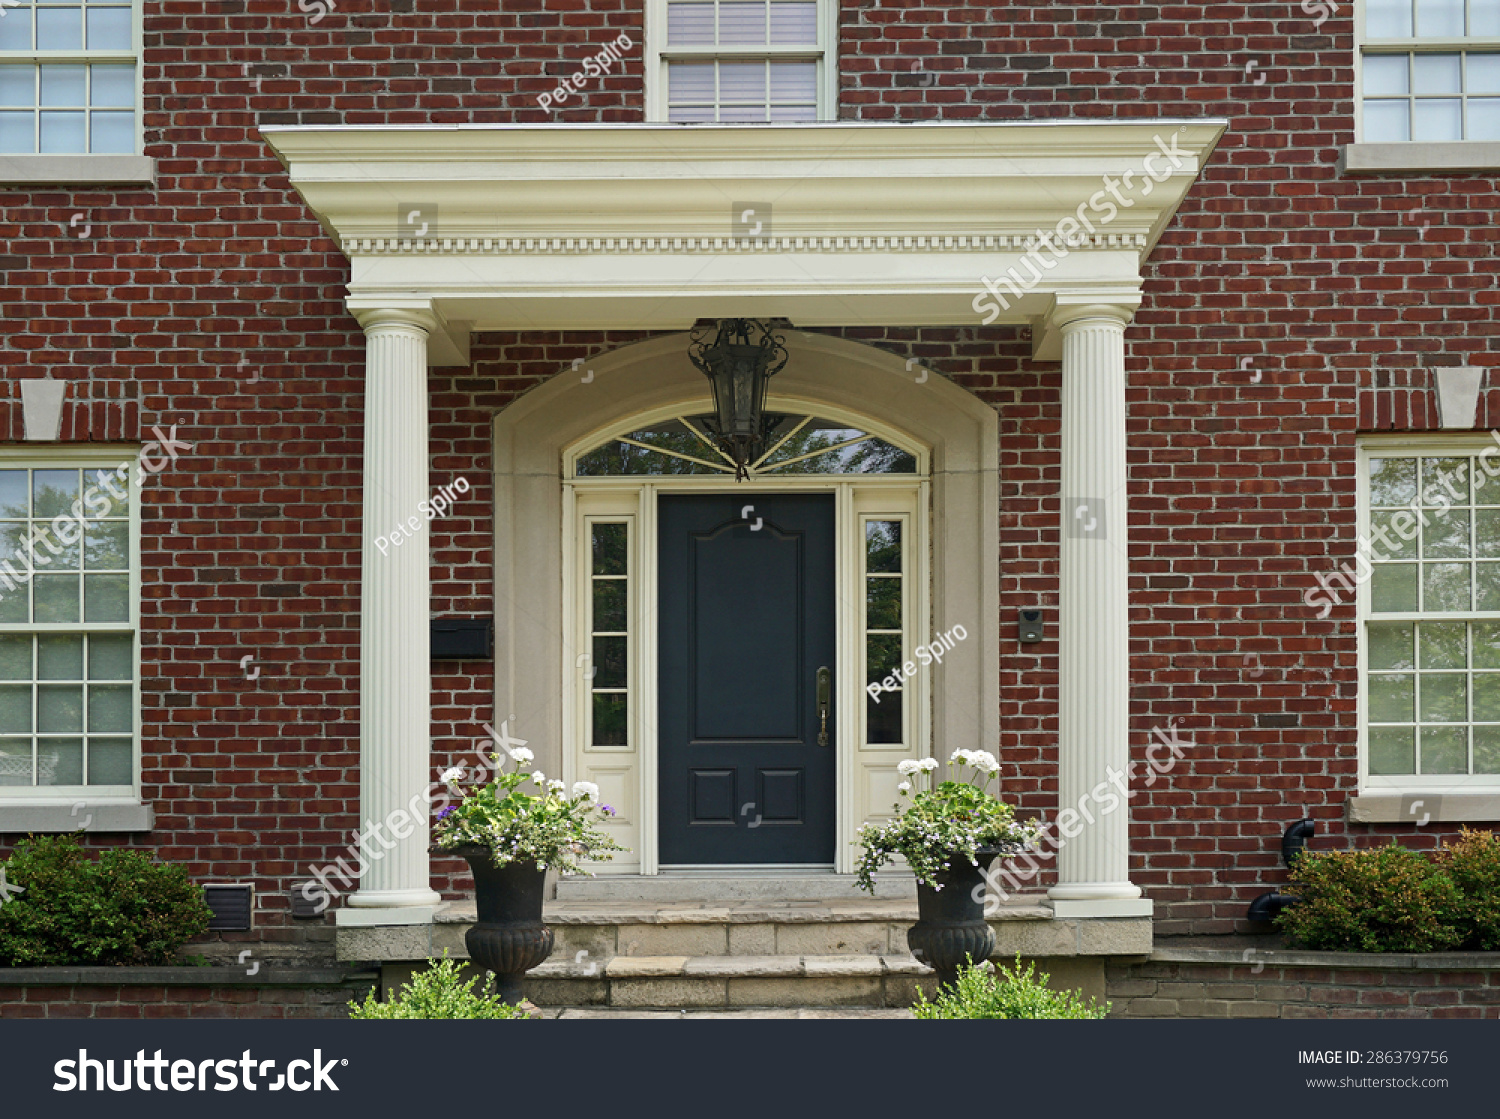 Front door large brick house portico stock photo 286379756 for Large front door